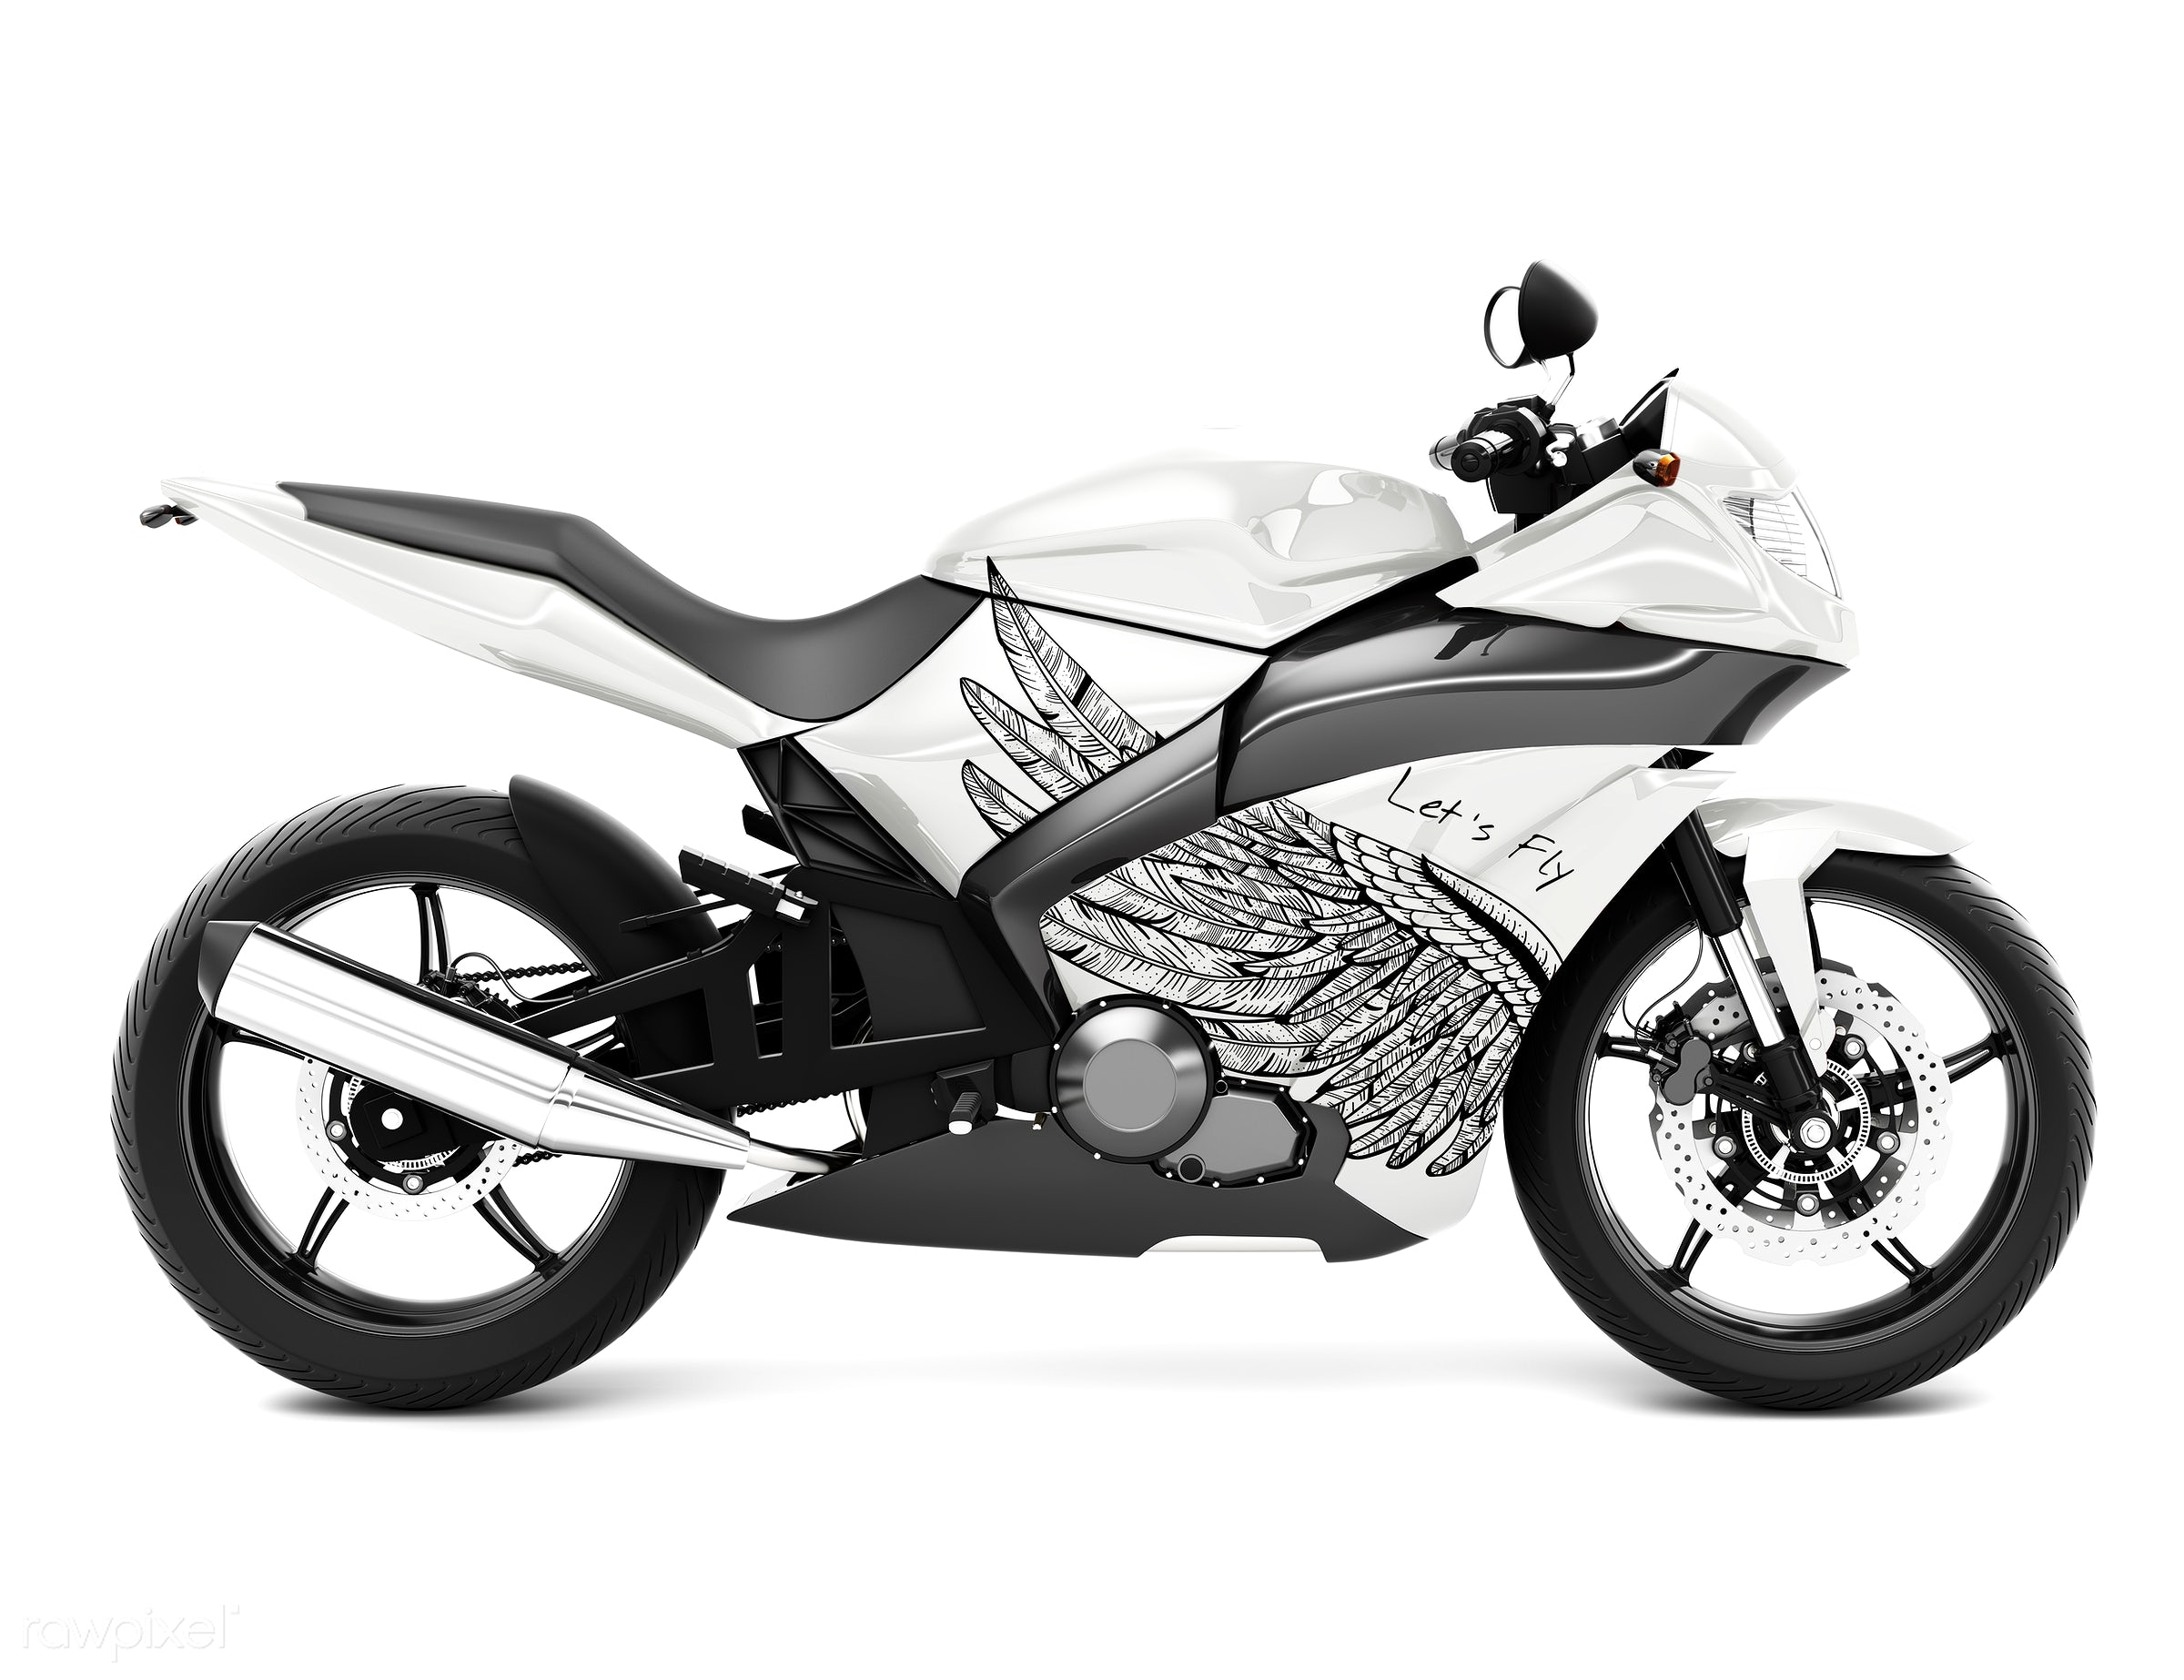 Three dimensional image of motor bike - motorcycle, bike, 3d, automobile, automotive, cool, graphic, holiday, illustration,...